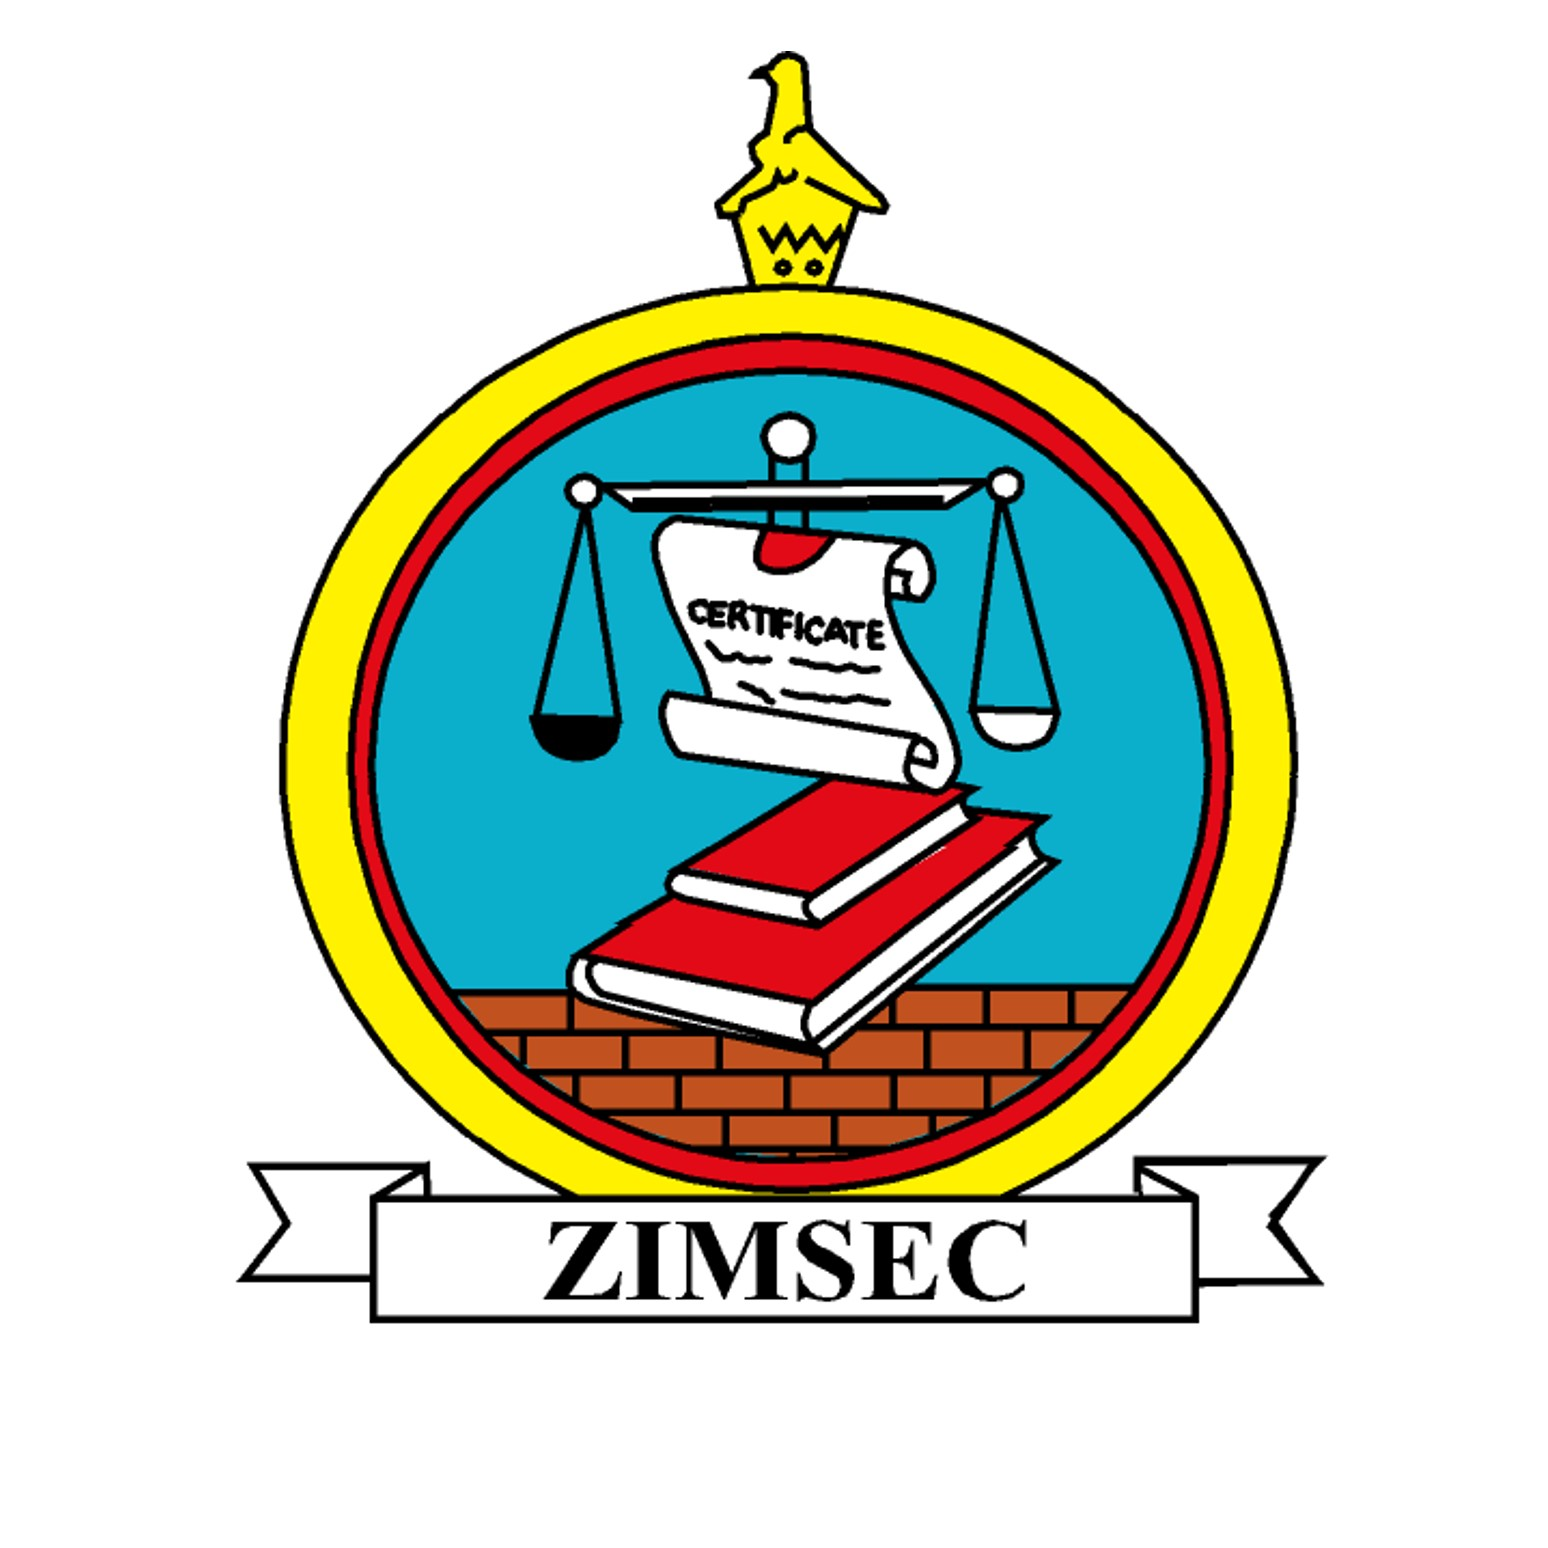 Zimsec Ministry of Education